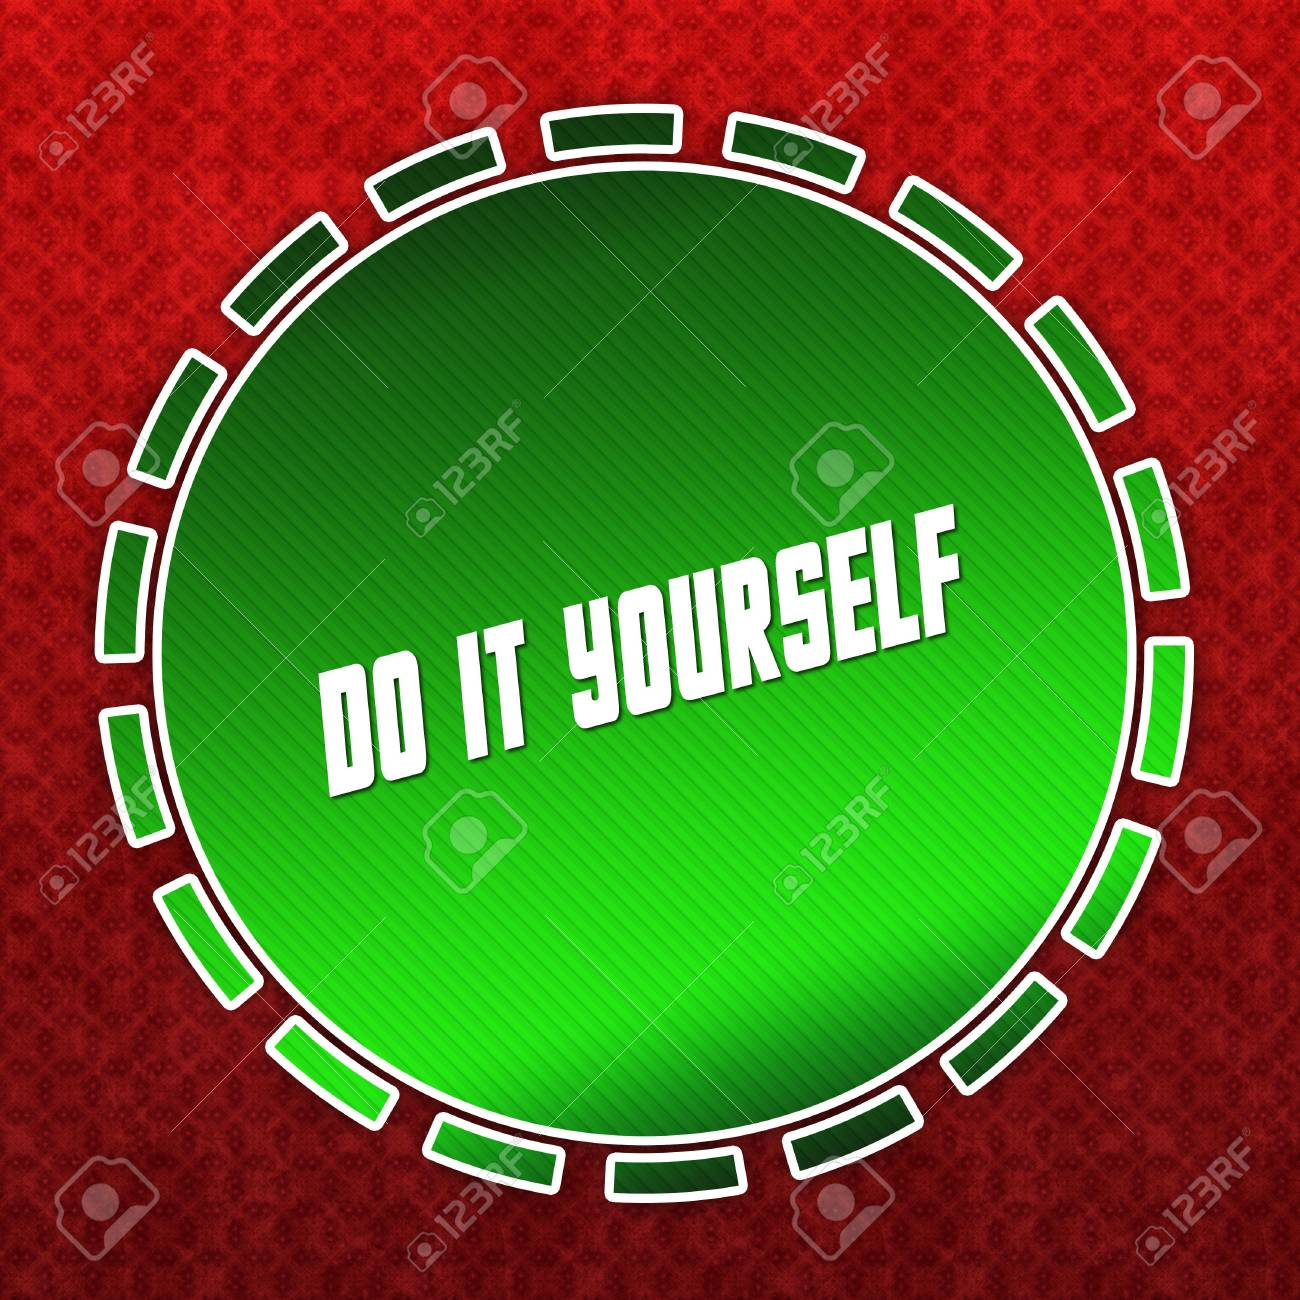 Green do it yourself badge on red pattern background illustration green do it yourself badge on red pattern background illustration stock illustration 94052140 solutioingenieria Image collections